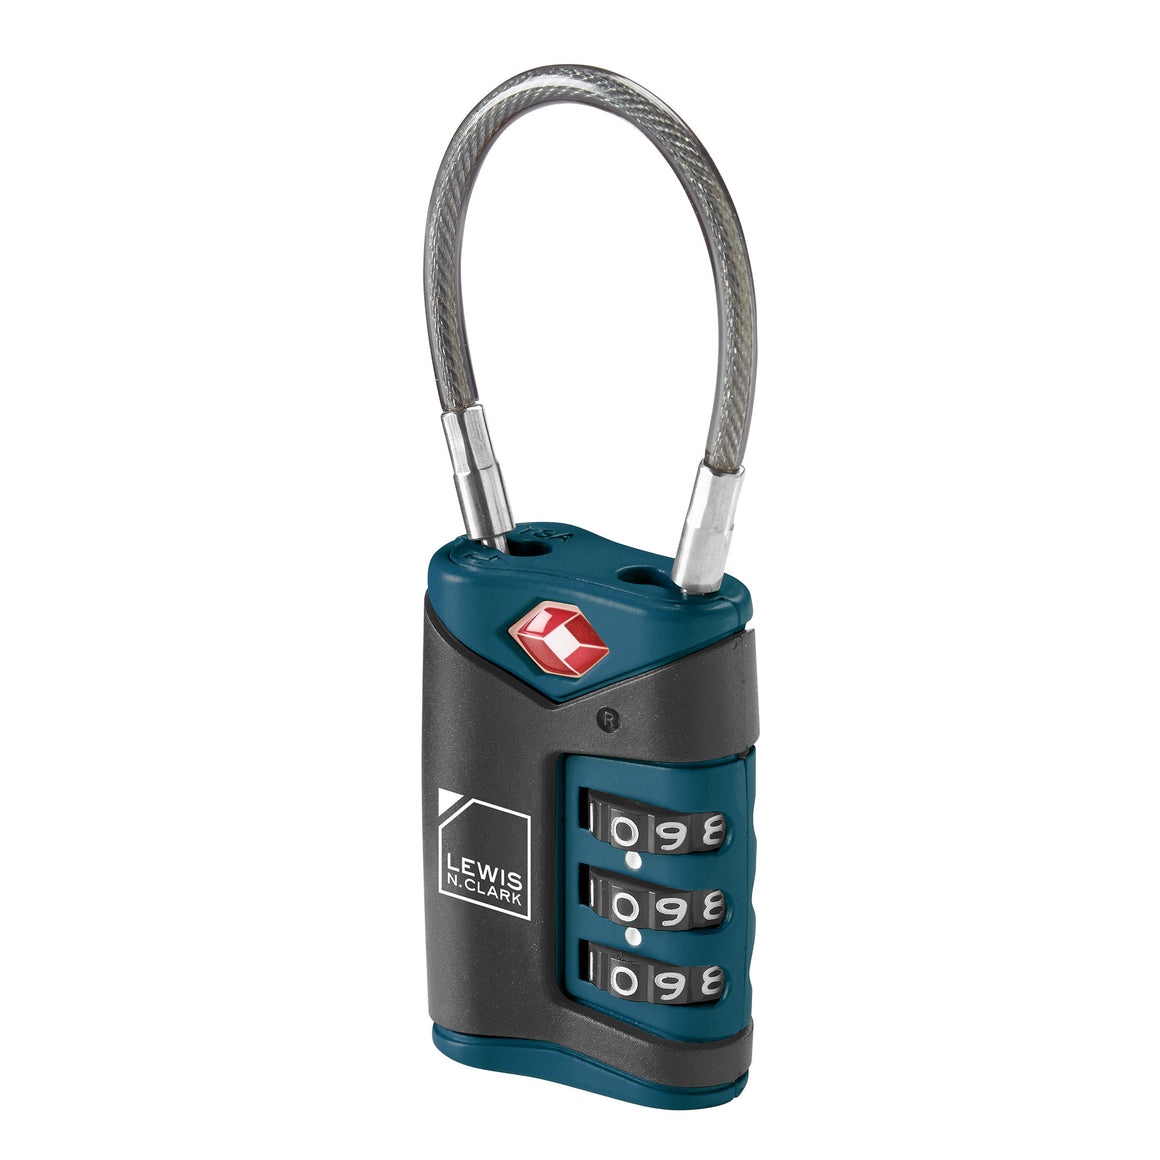 Lewis N Clark TSA Approved Luggage Cable Combination Lock